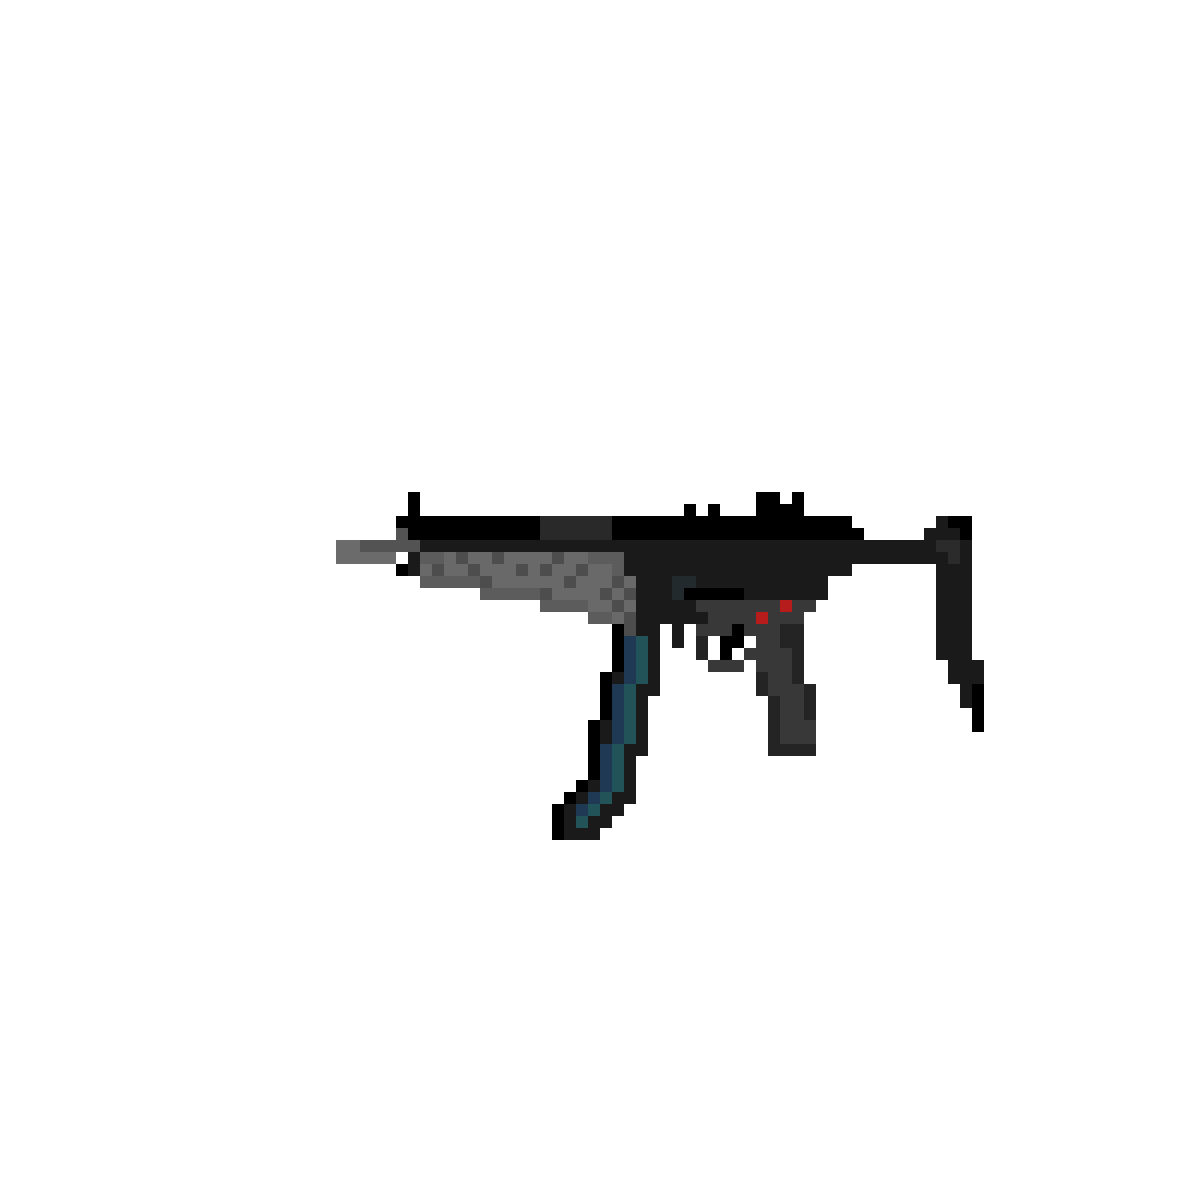 Mp5 drawing. Pixilart mp by anonymous